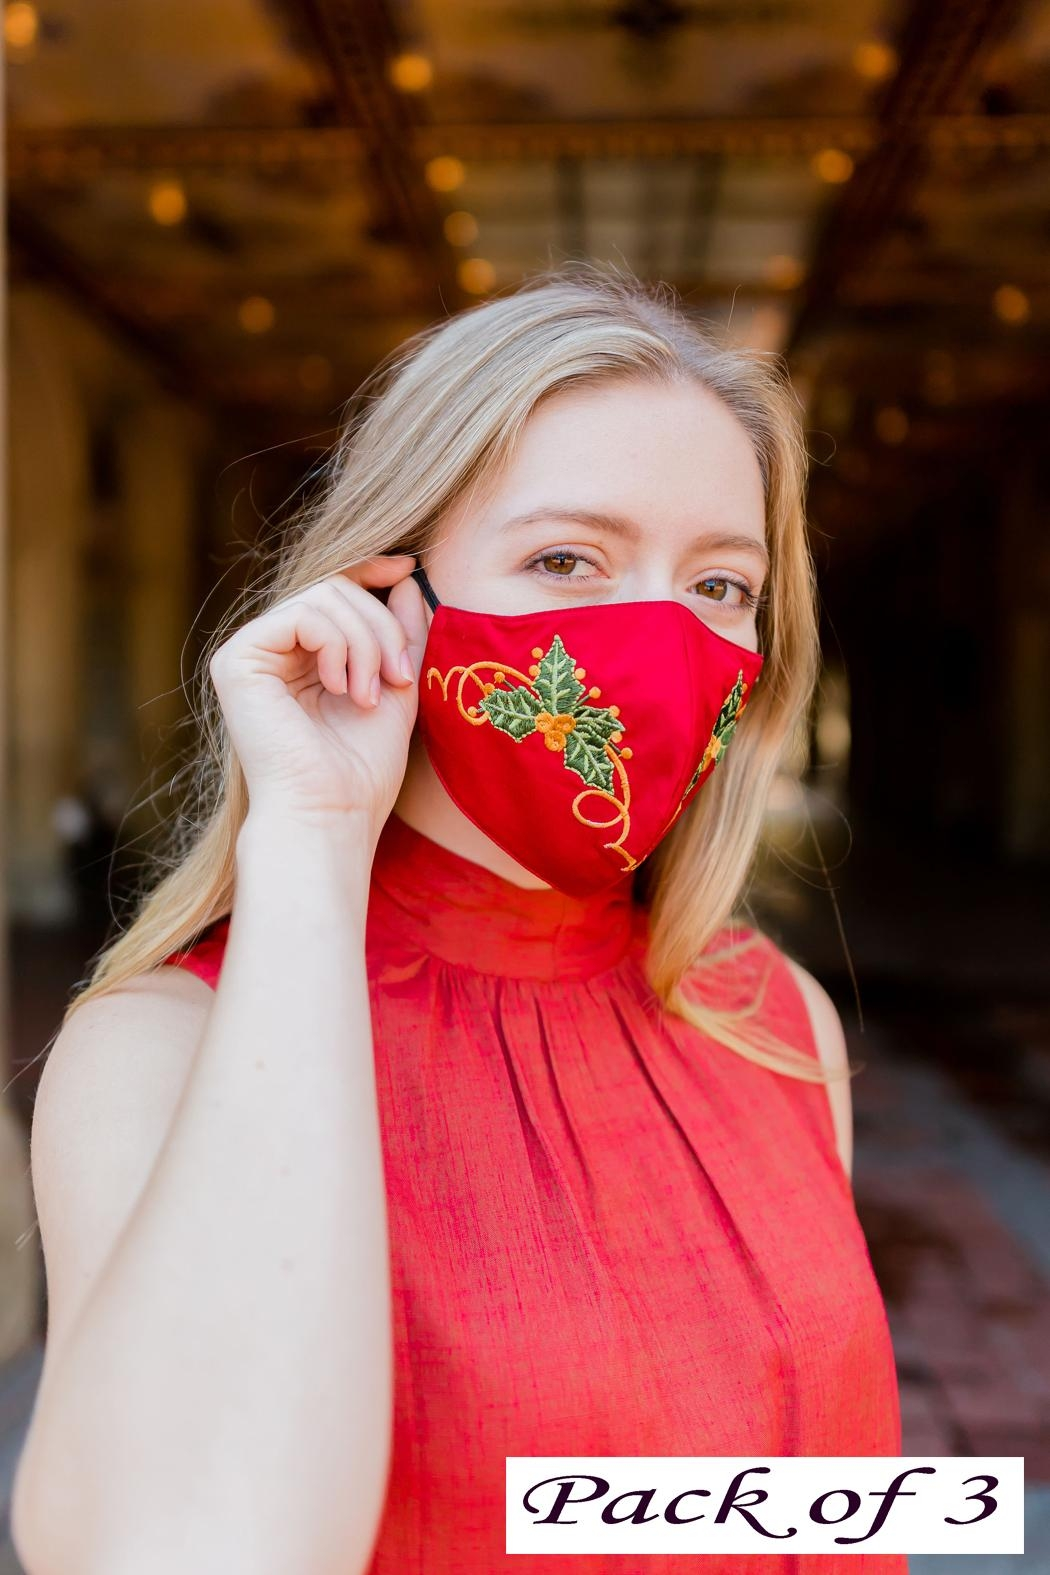 Young Threads Charismas Gift, Holiday Embroidered Face Mask, 3layered, 100% Cotton Lining Pack Of 3 - Main Image